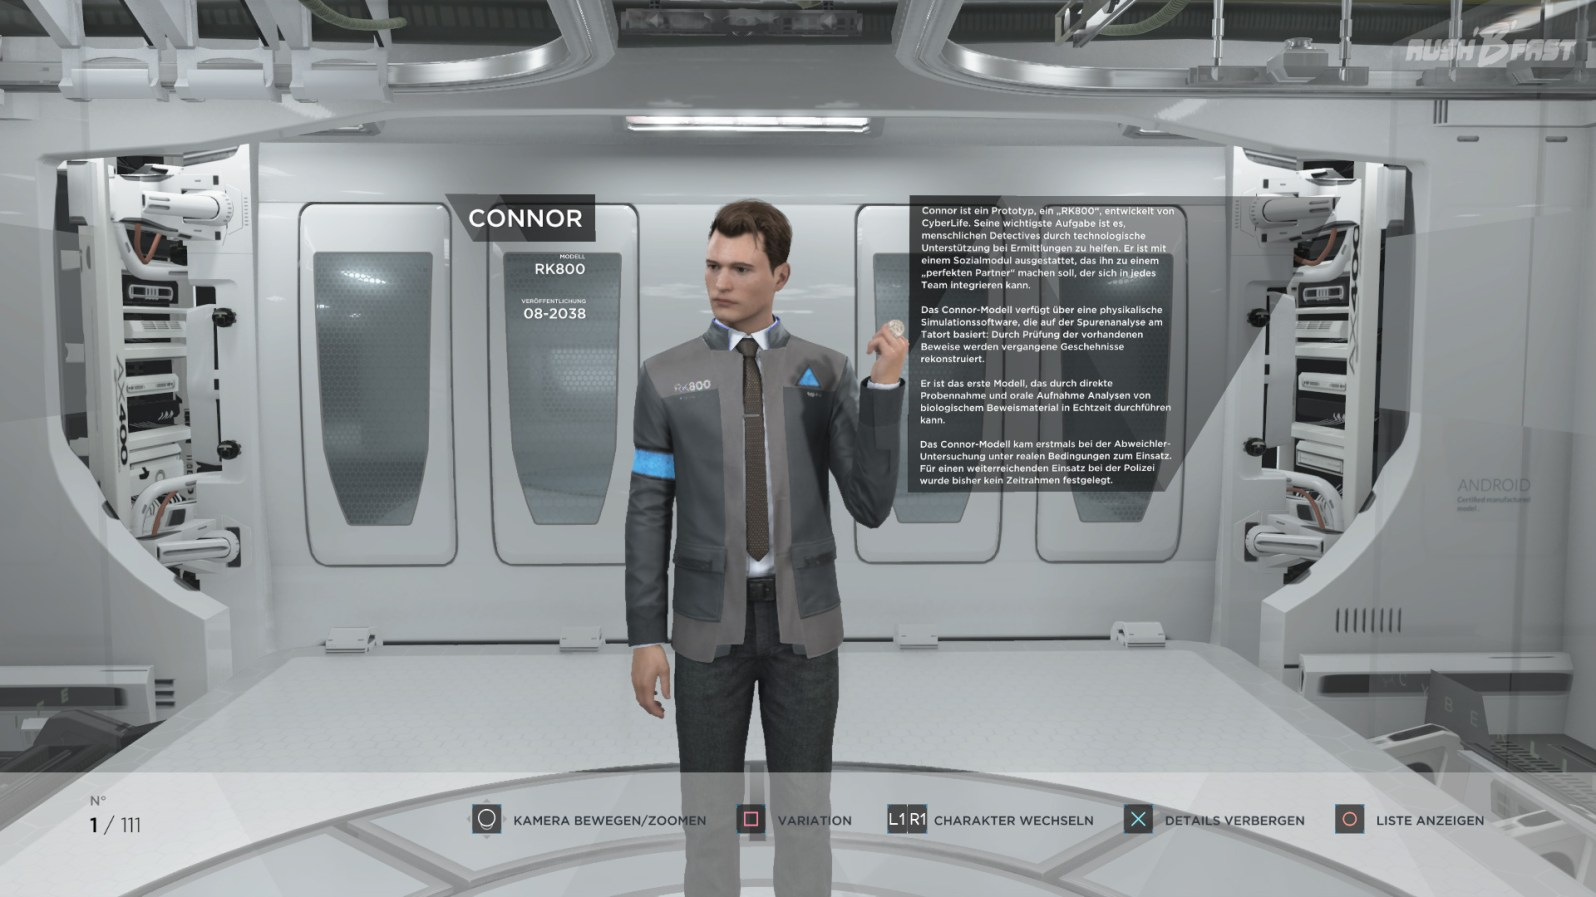 Connor - Modell: RK800